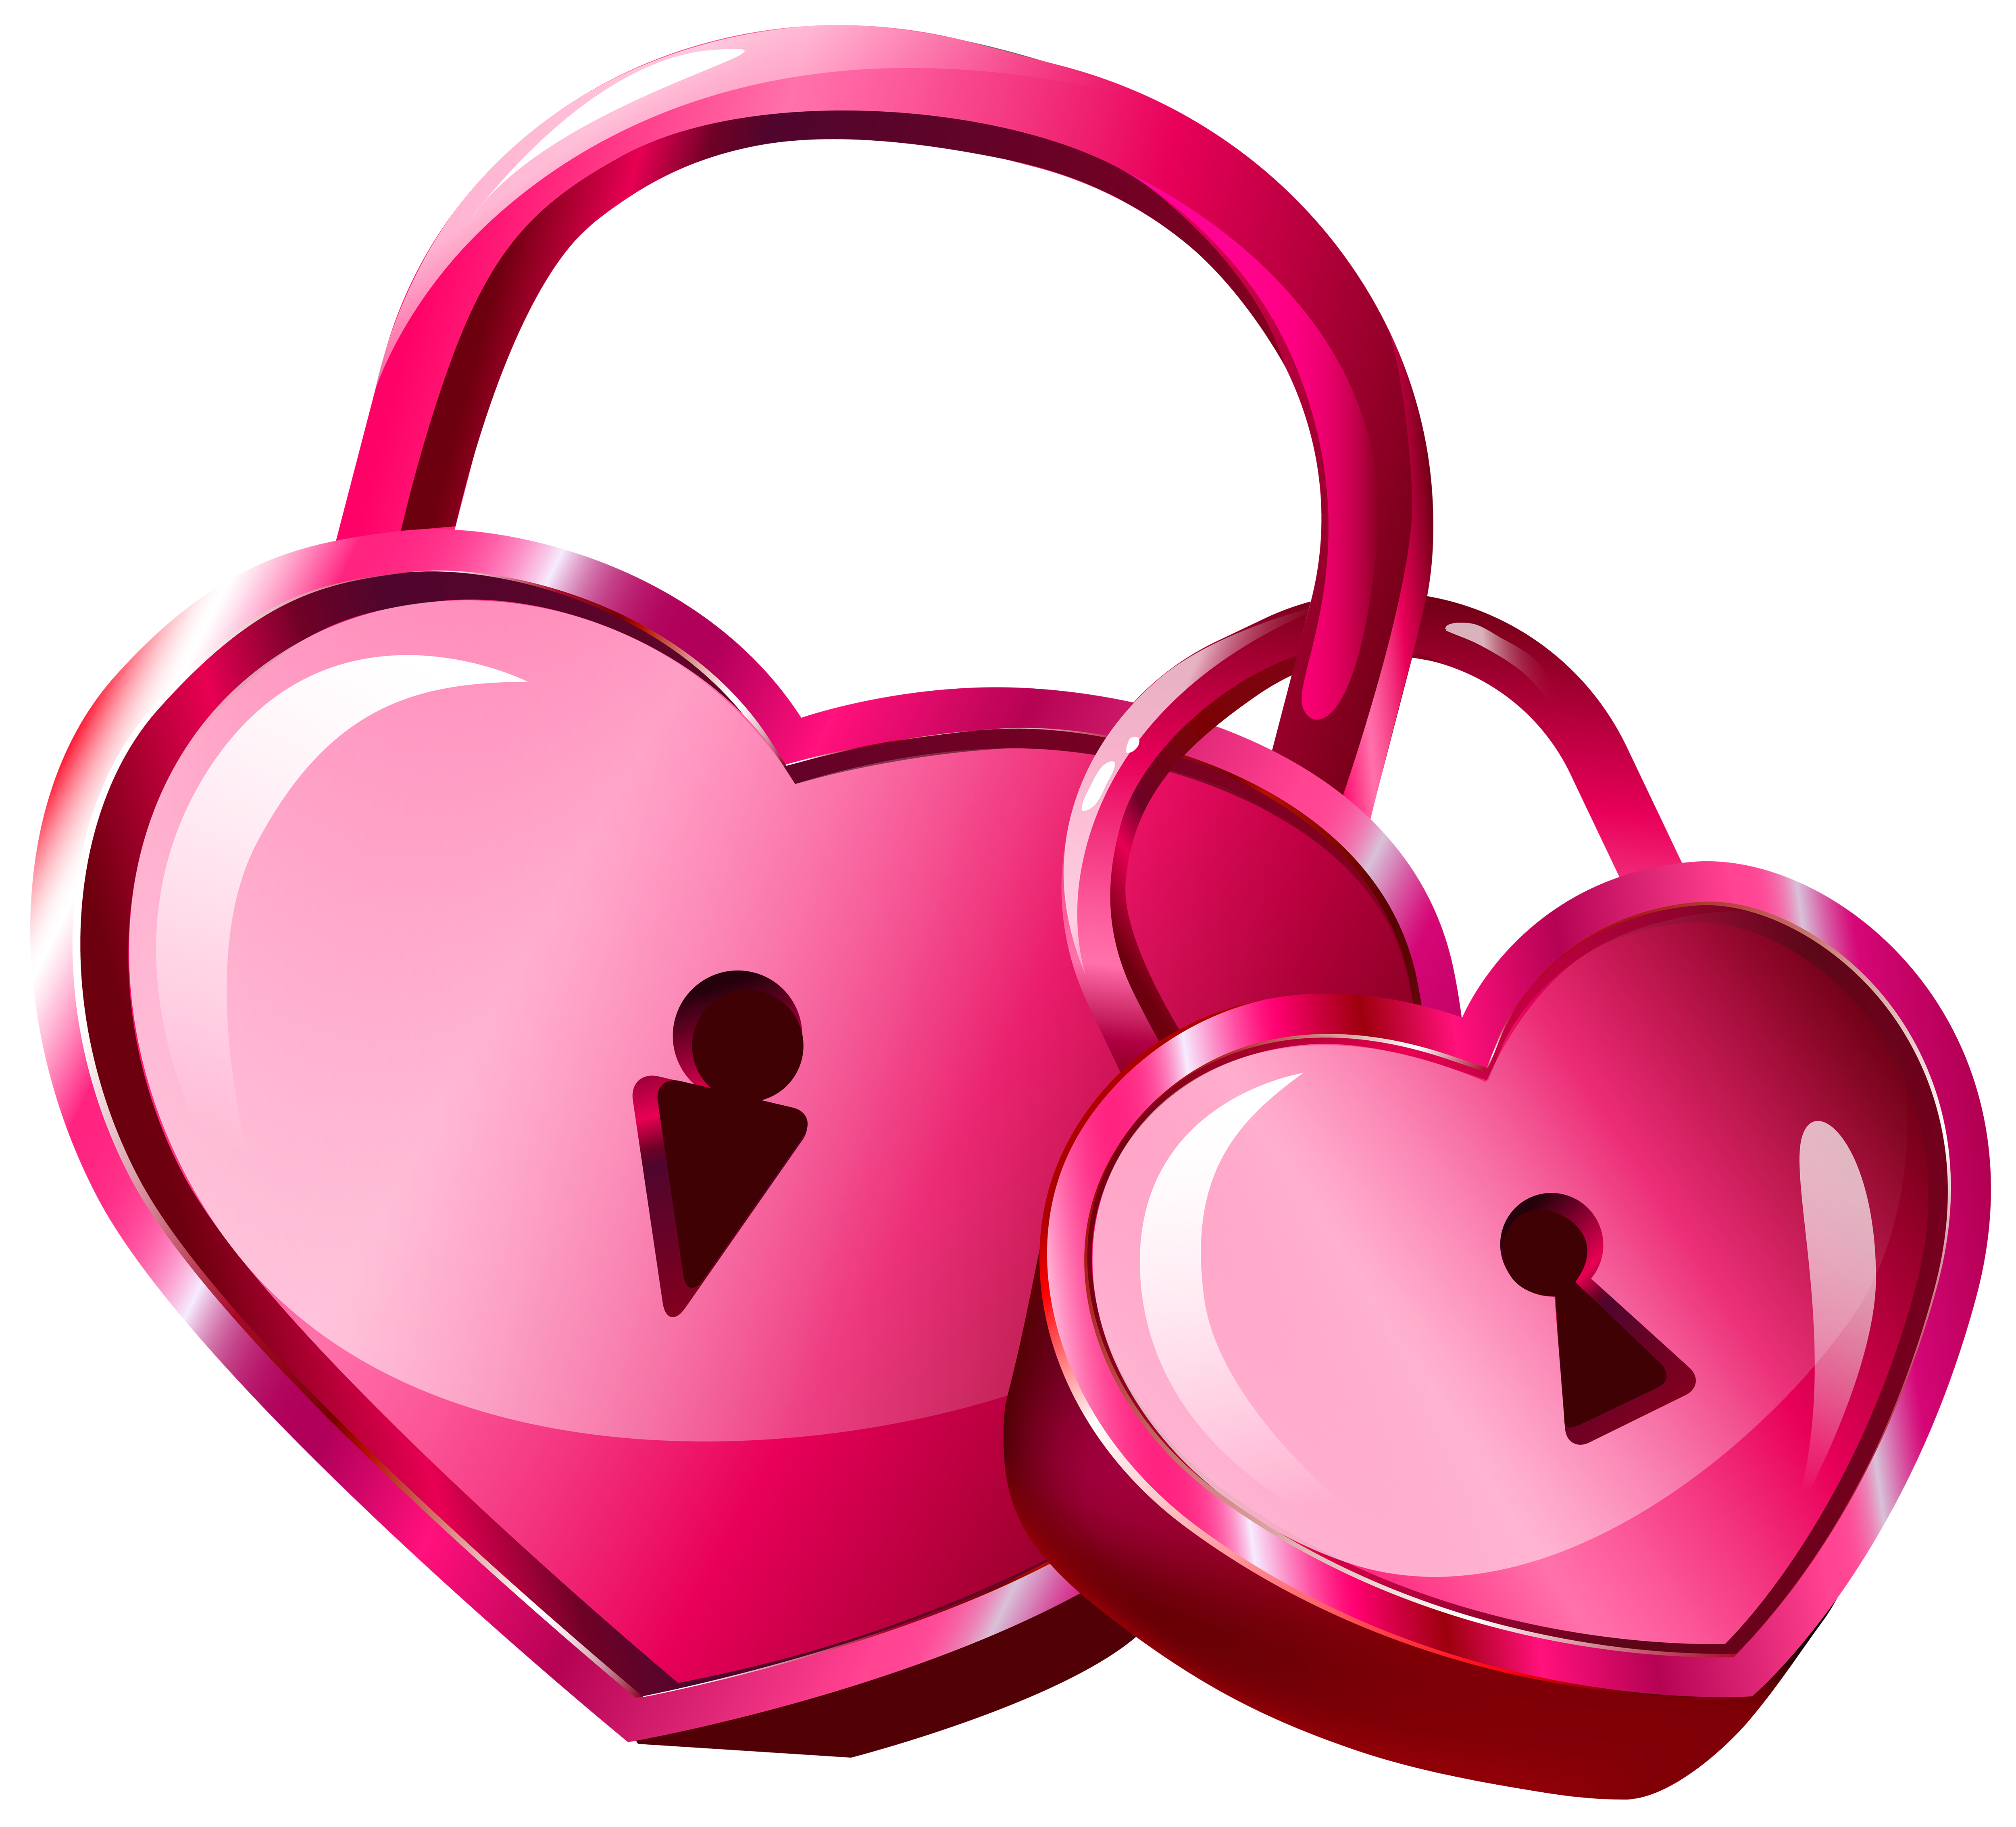 Heart locks transparent png. Girly clipart valentine